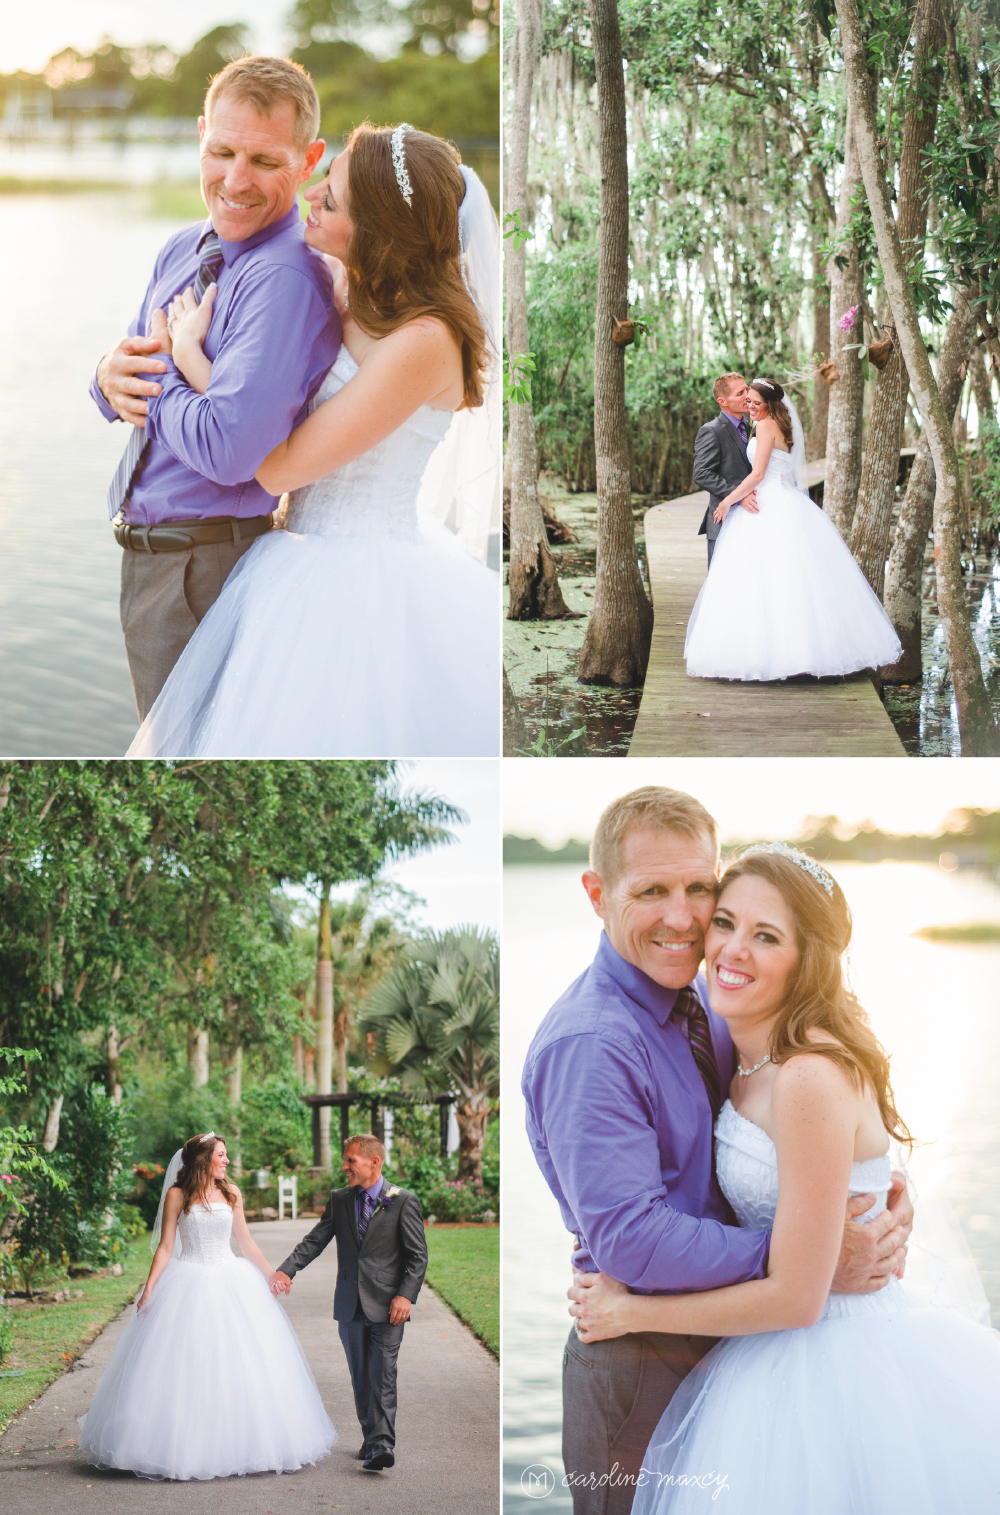 Miss Cindy's Garden Destination Wedding Photography with Caroline Maxcy Photography.